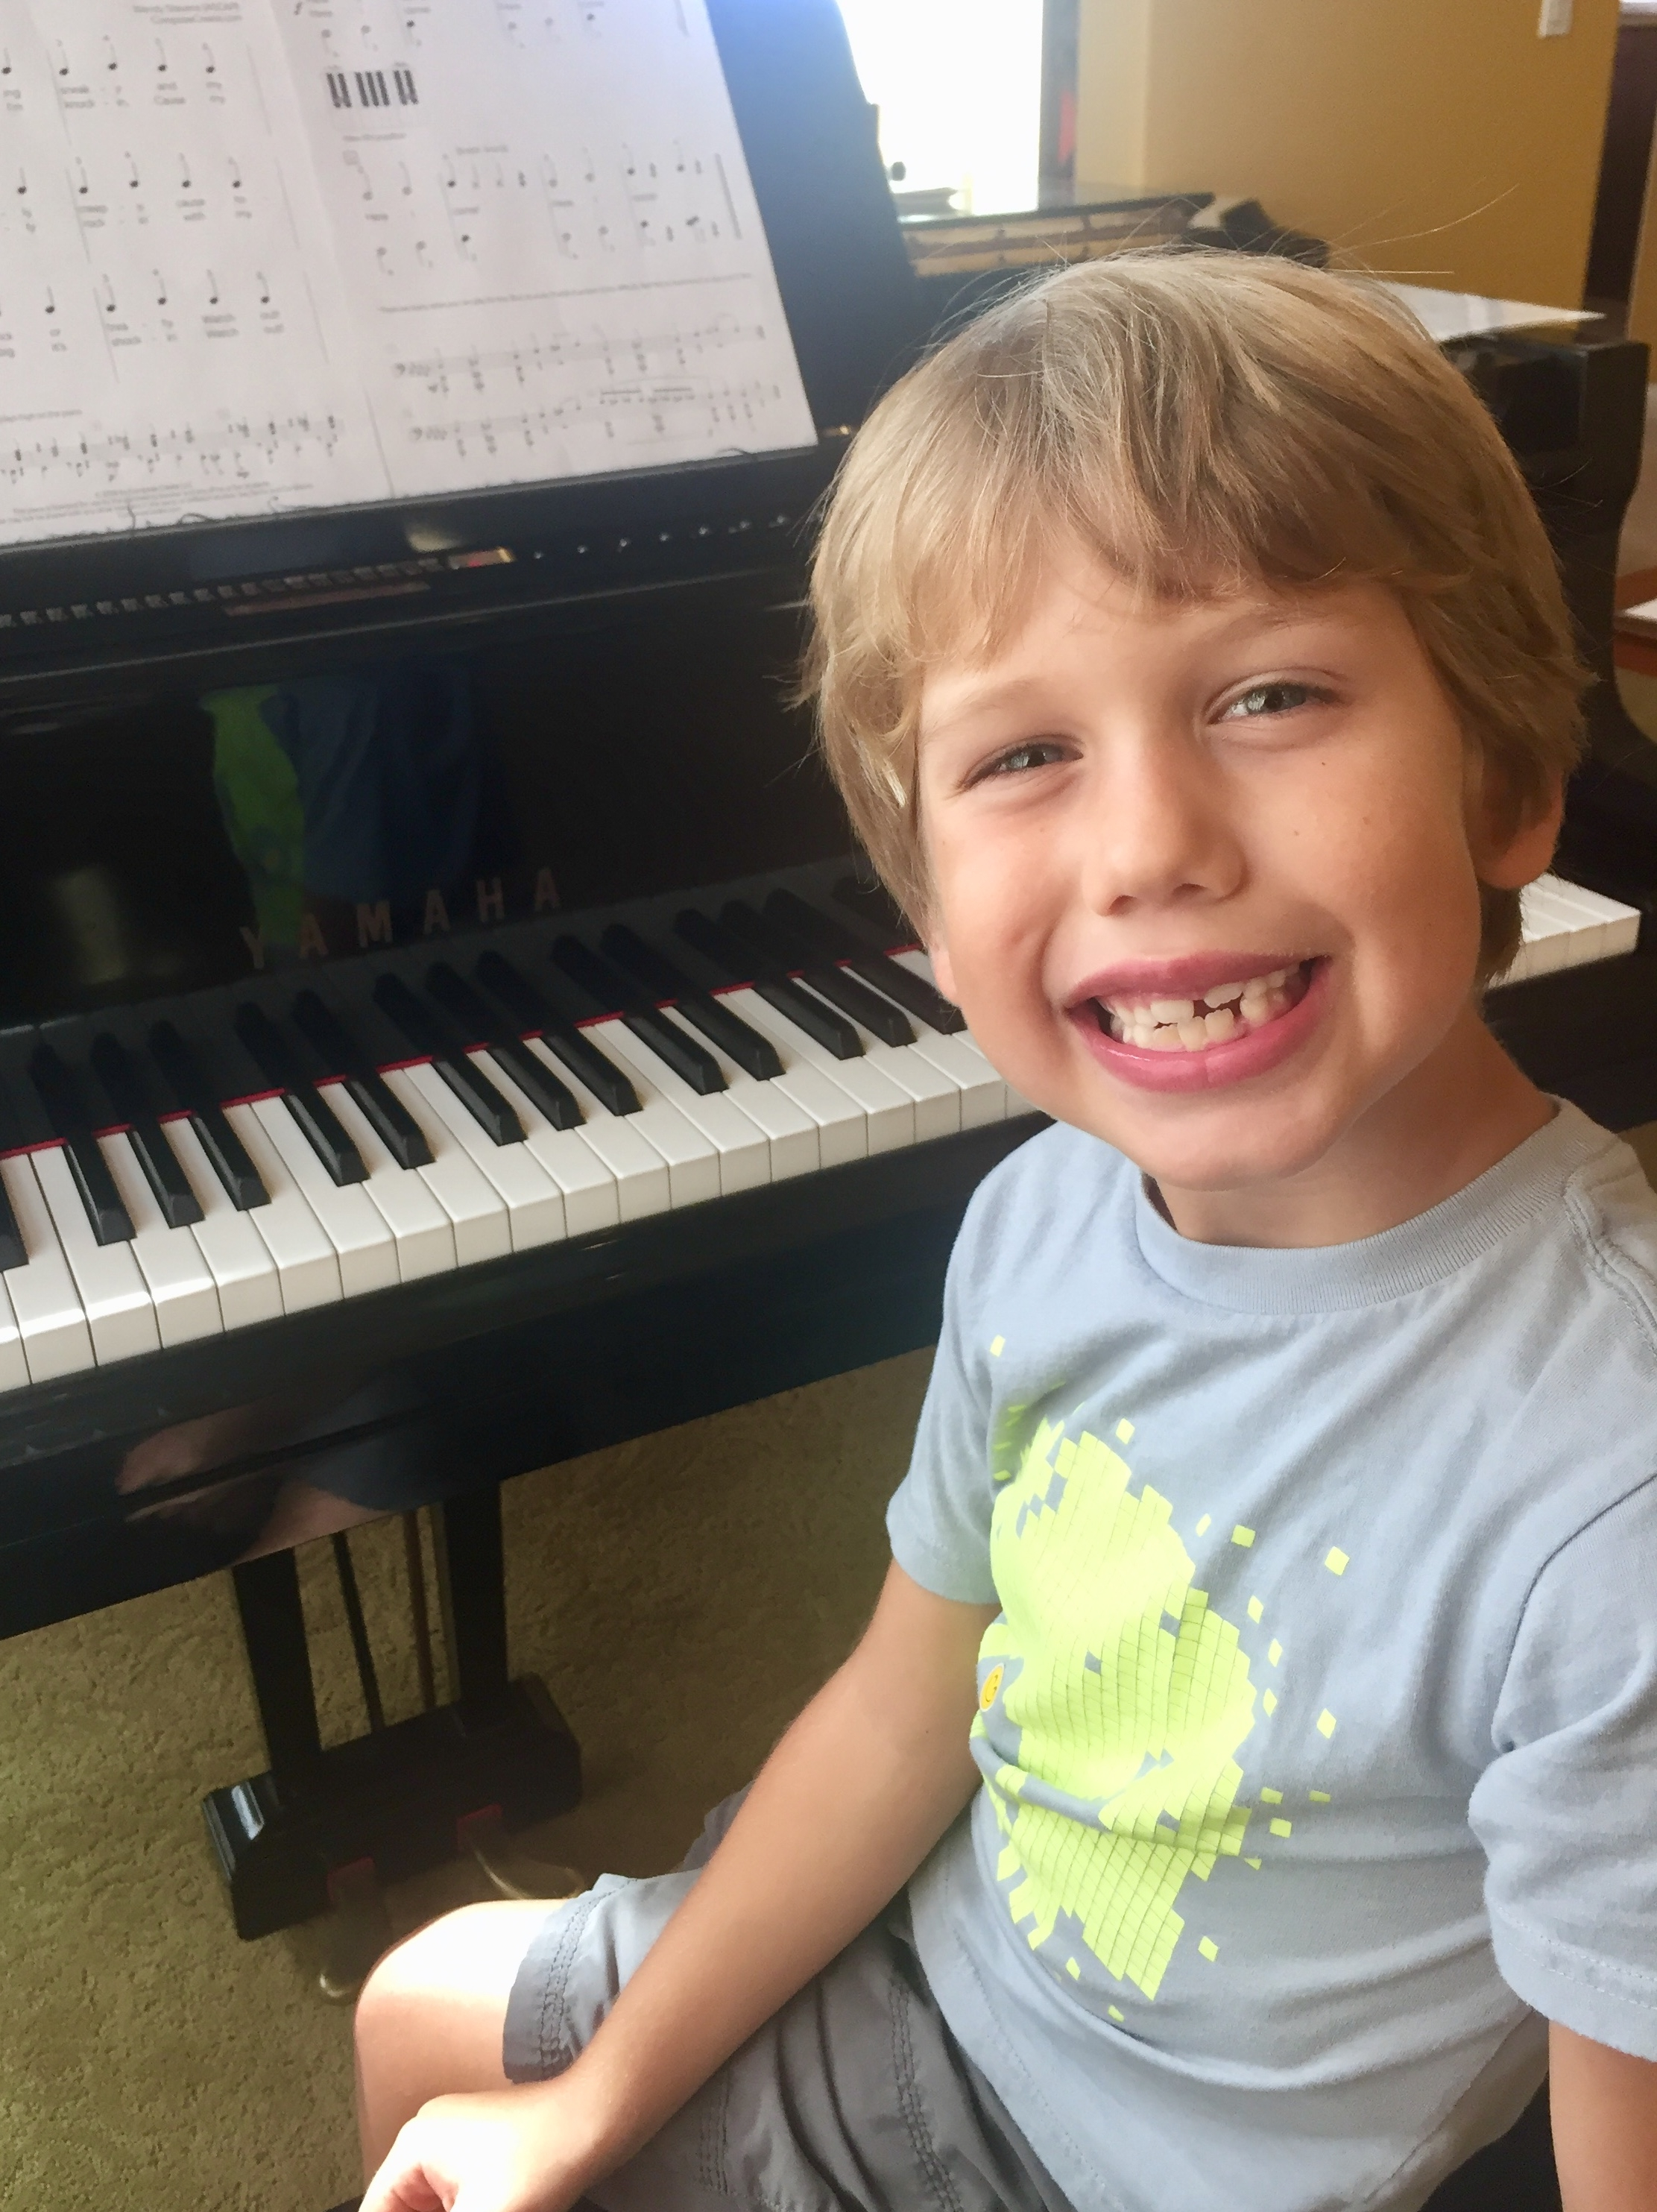 congrats Jaymeson! You earned the Student Highlight for showing off your new love of music with #musicspeaksstudio - Congrats Jaymeson! You earned the Student Highlight for showing off your new love of music with #musicspeaksstudio